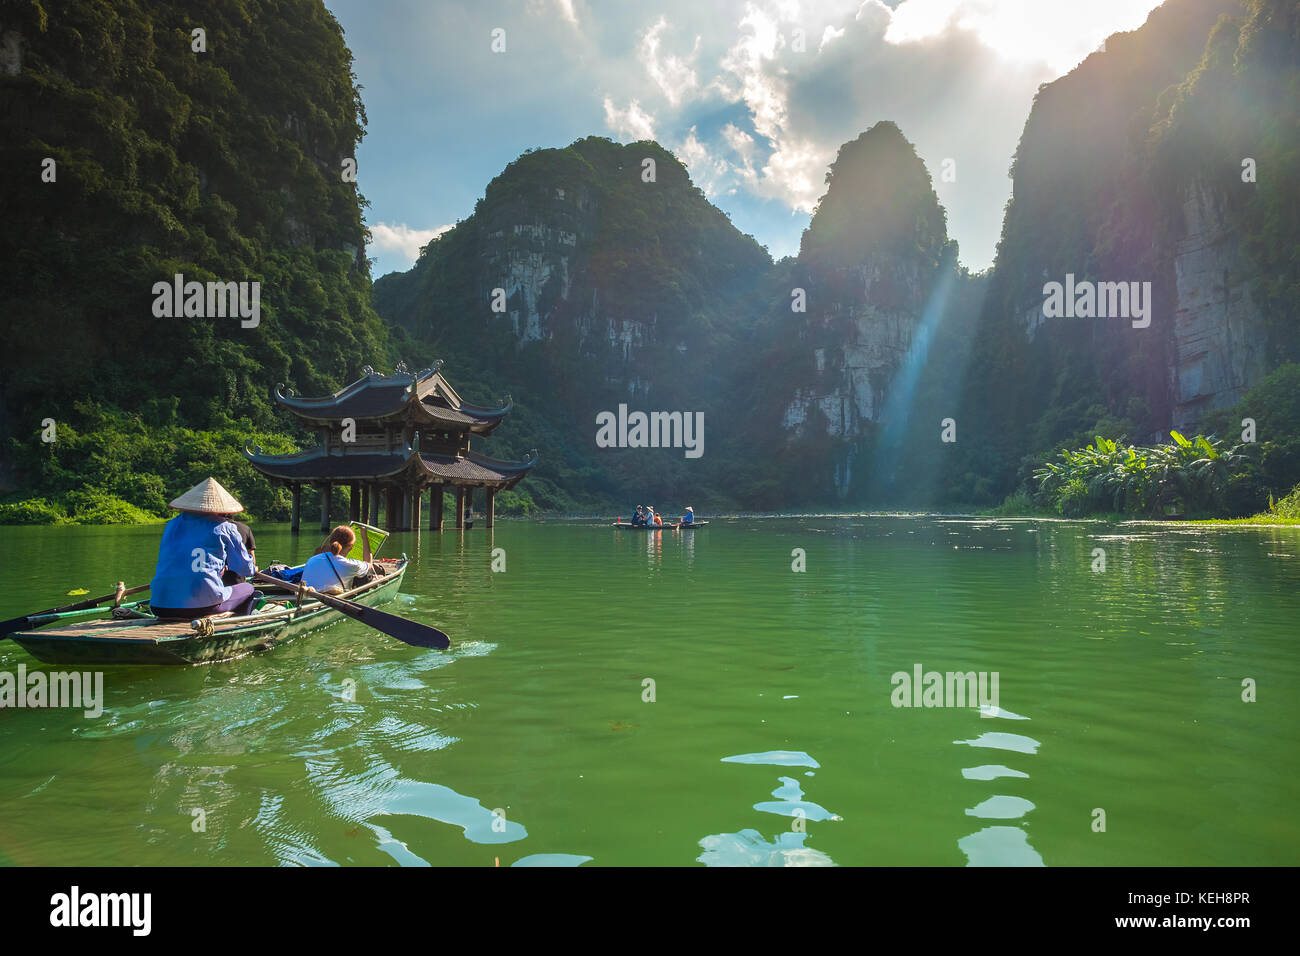 Sep 18, 2017 Foreign tourists ride local boat in Trang An landscape complex, Ninh Binh, Hanoi, Vietnam - Stock Image